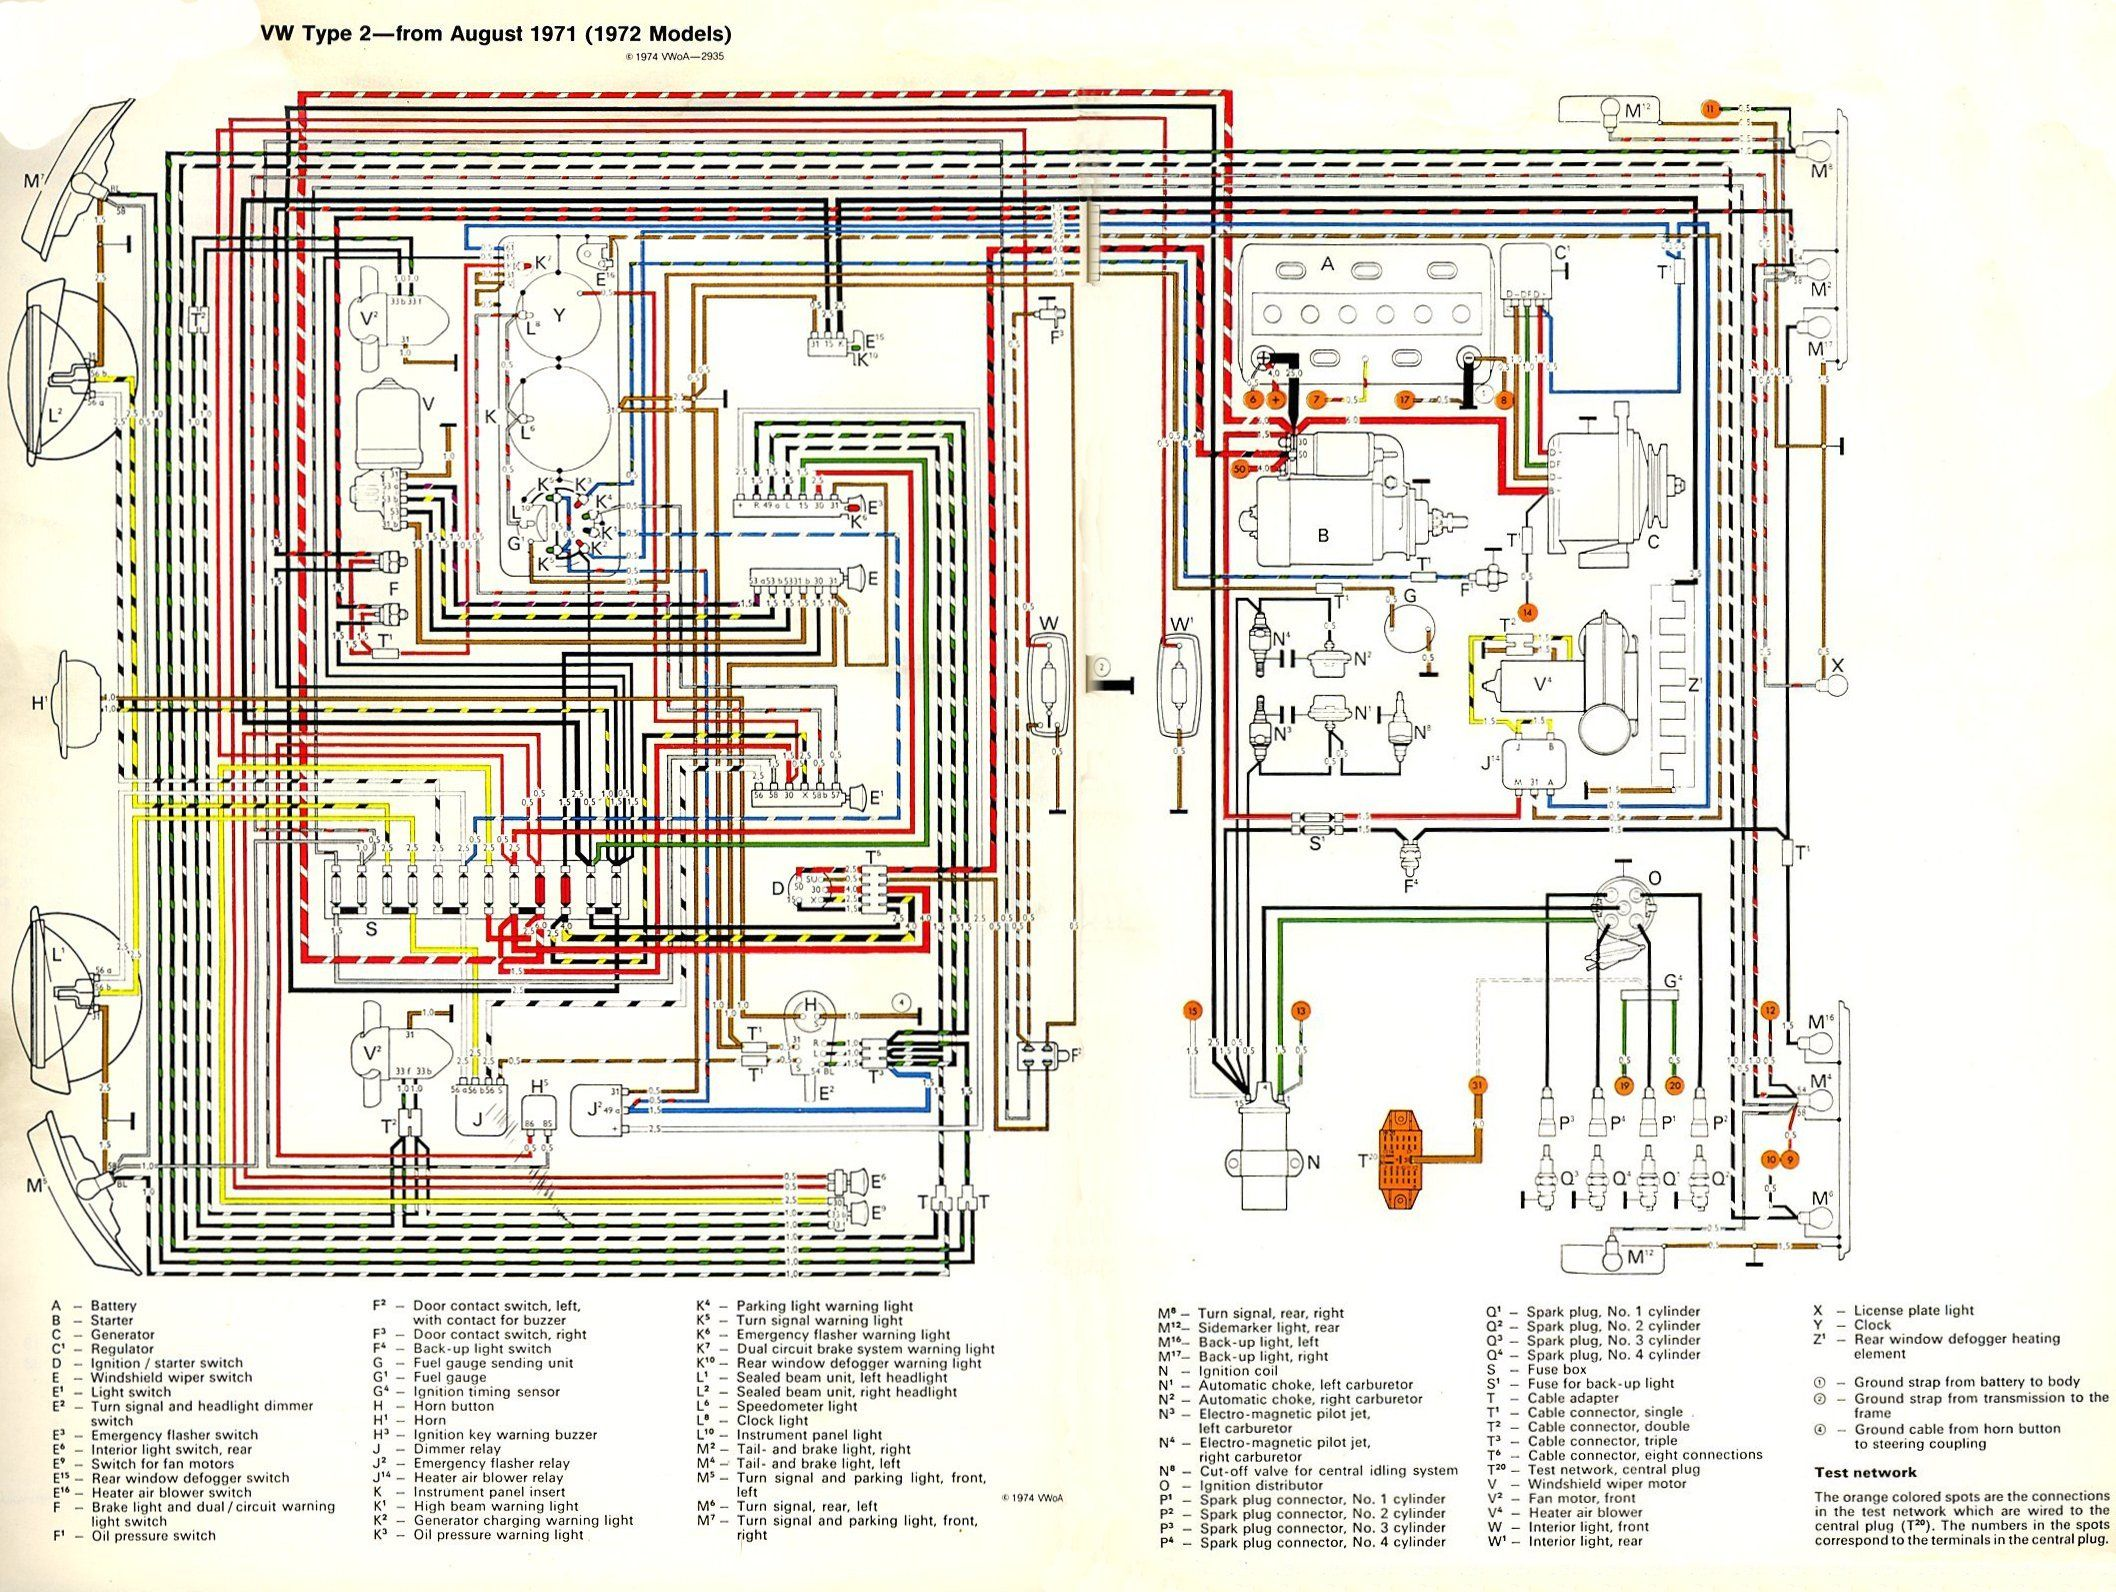 wiring diagram kombi cer kombi cer vw cer and vw